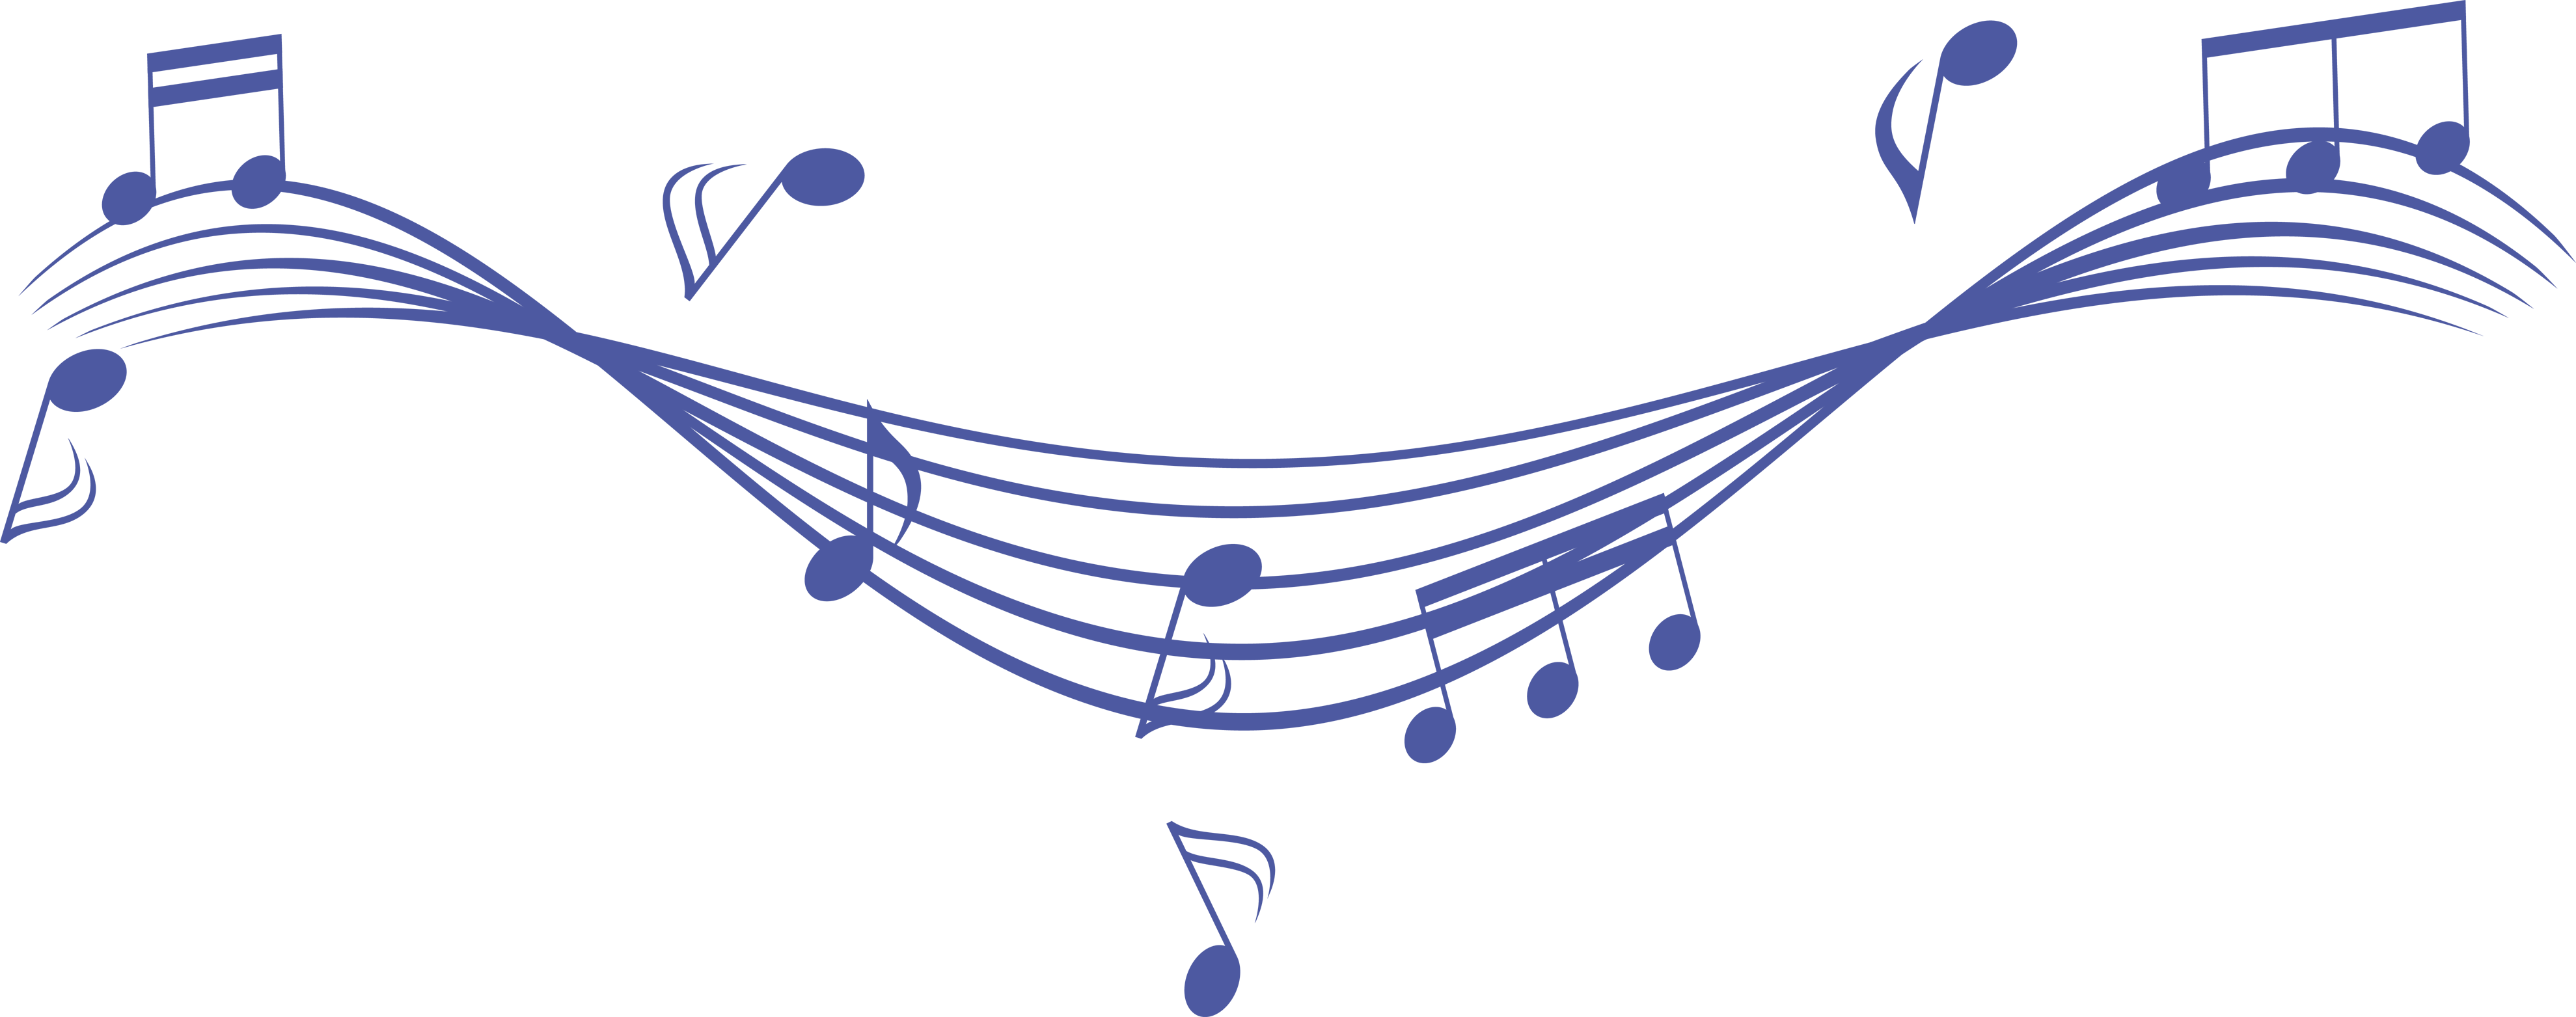 Music Notes PNG, psd, vector, icon Transparent images FREE  Music Notes PNG...